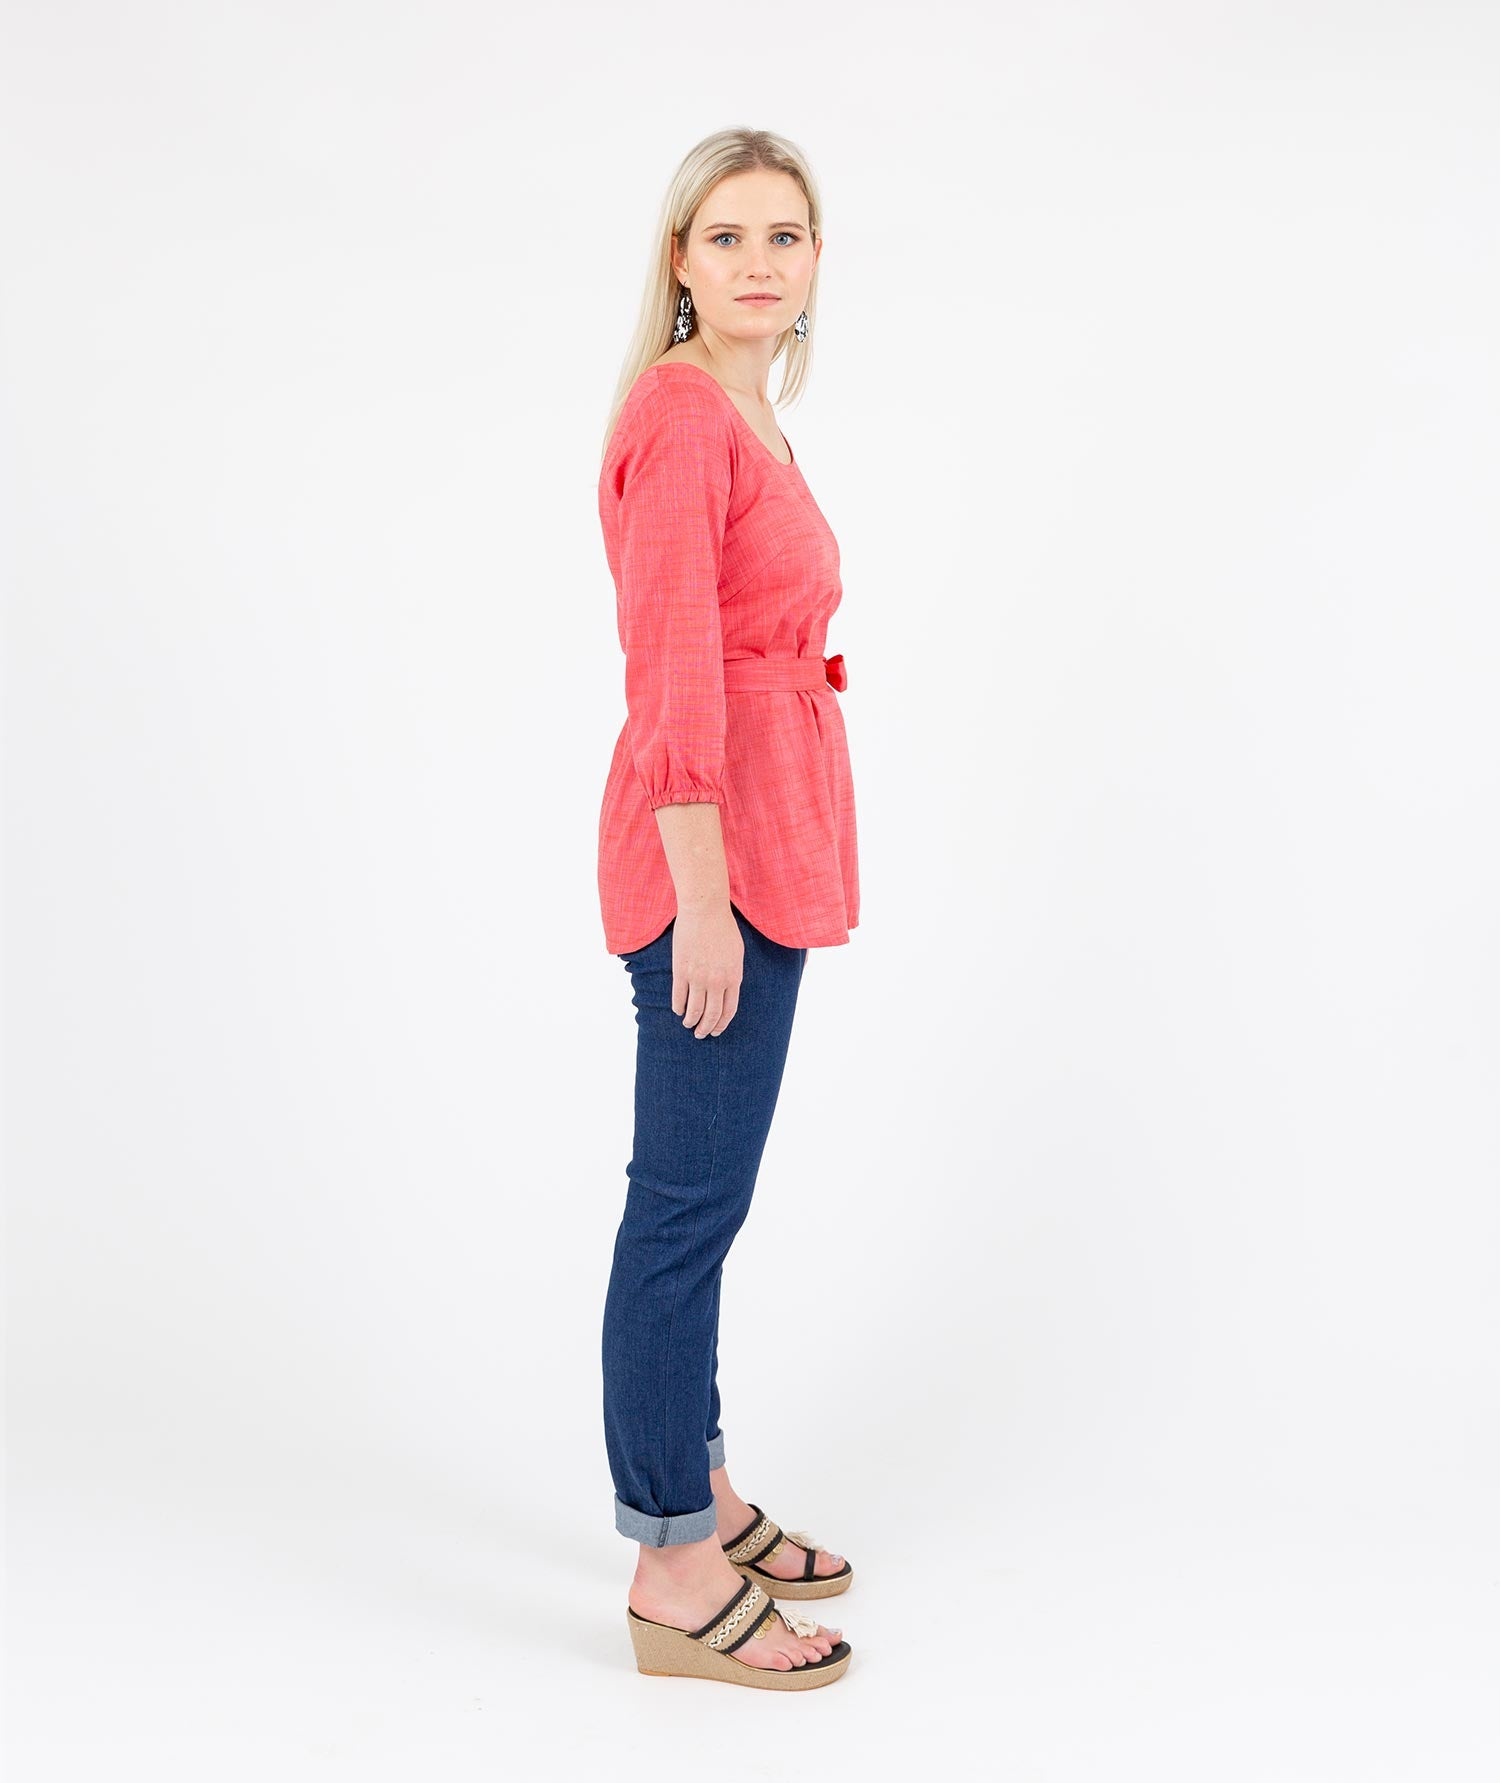 Holi Boli, Escapade Top, Top, ethical fashion